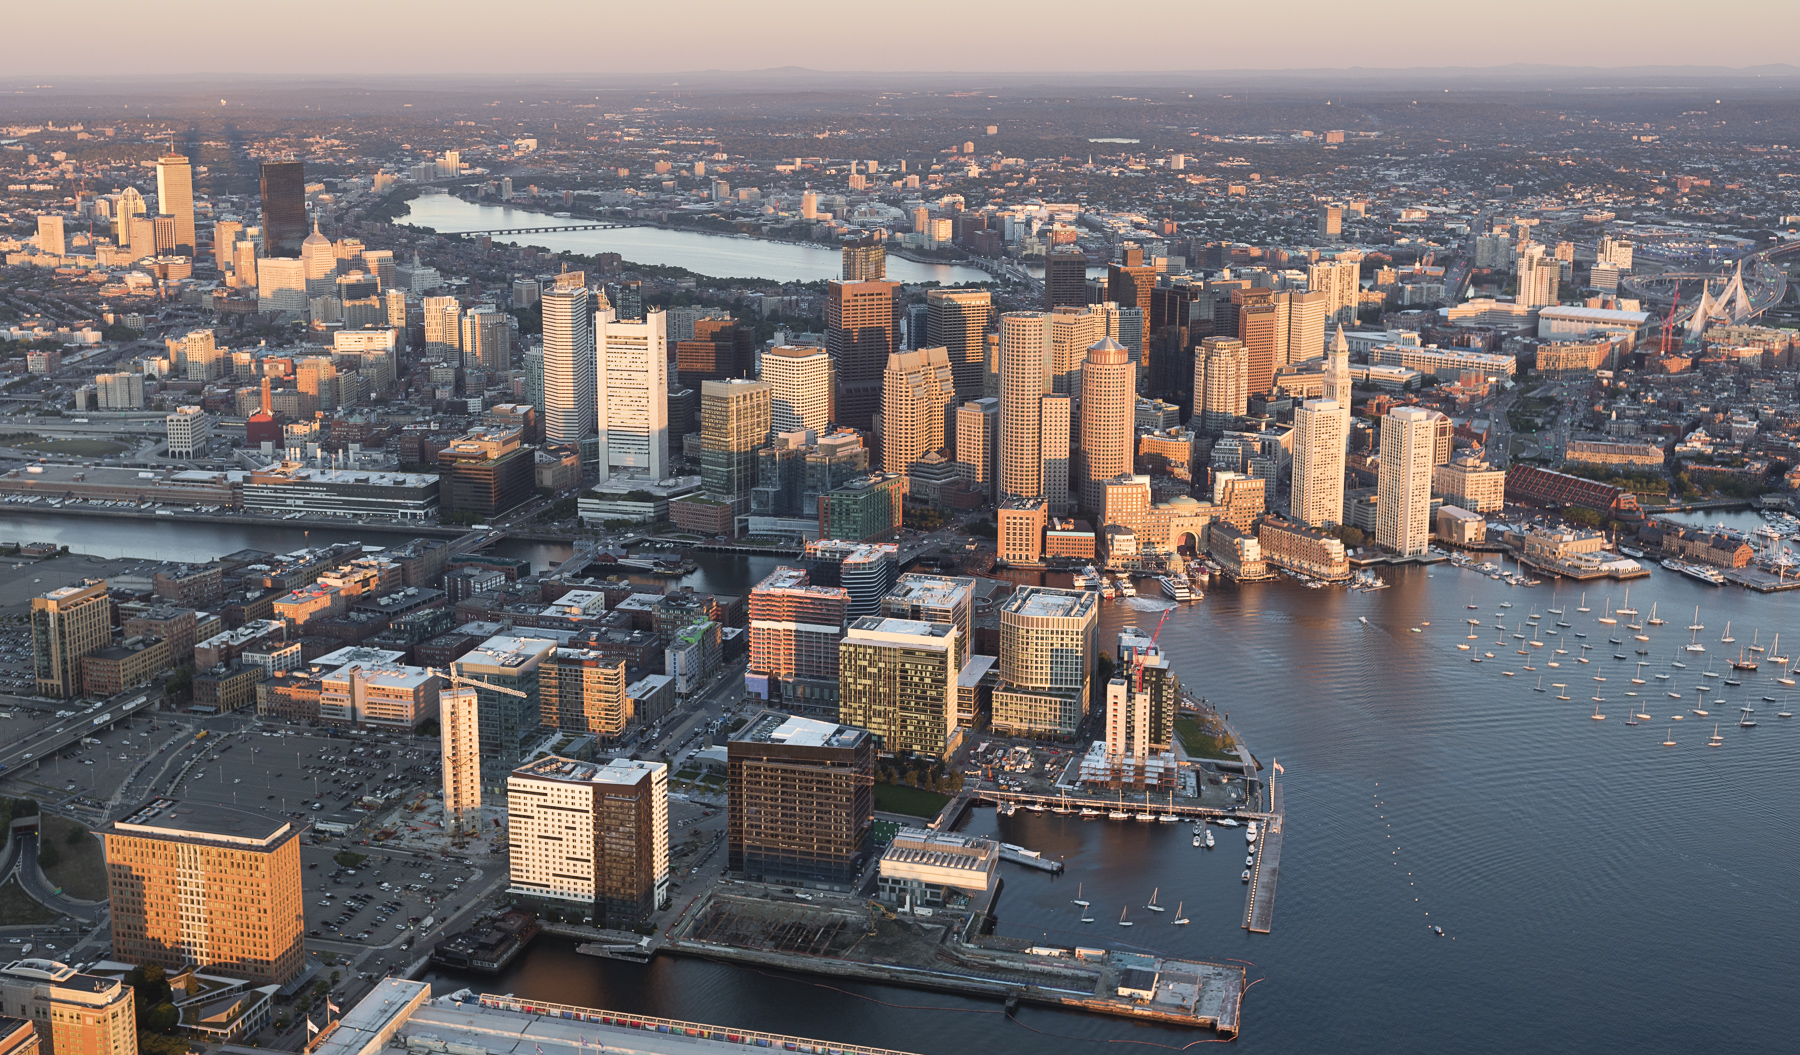 Boston Seaport aerial view sunrise